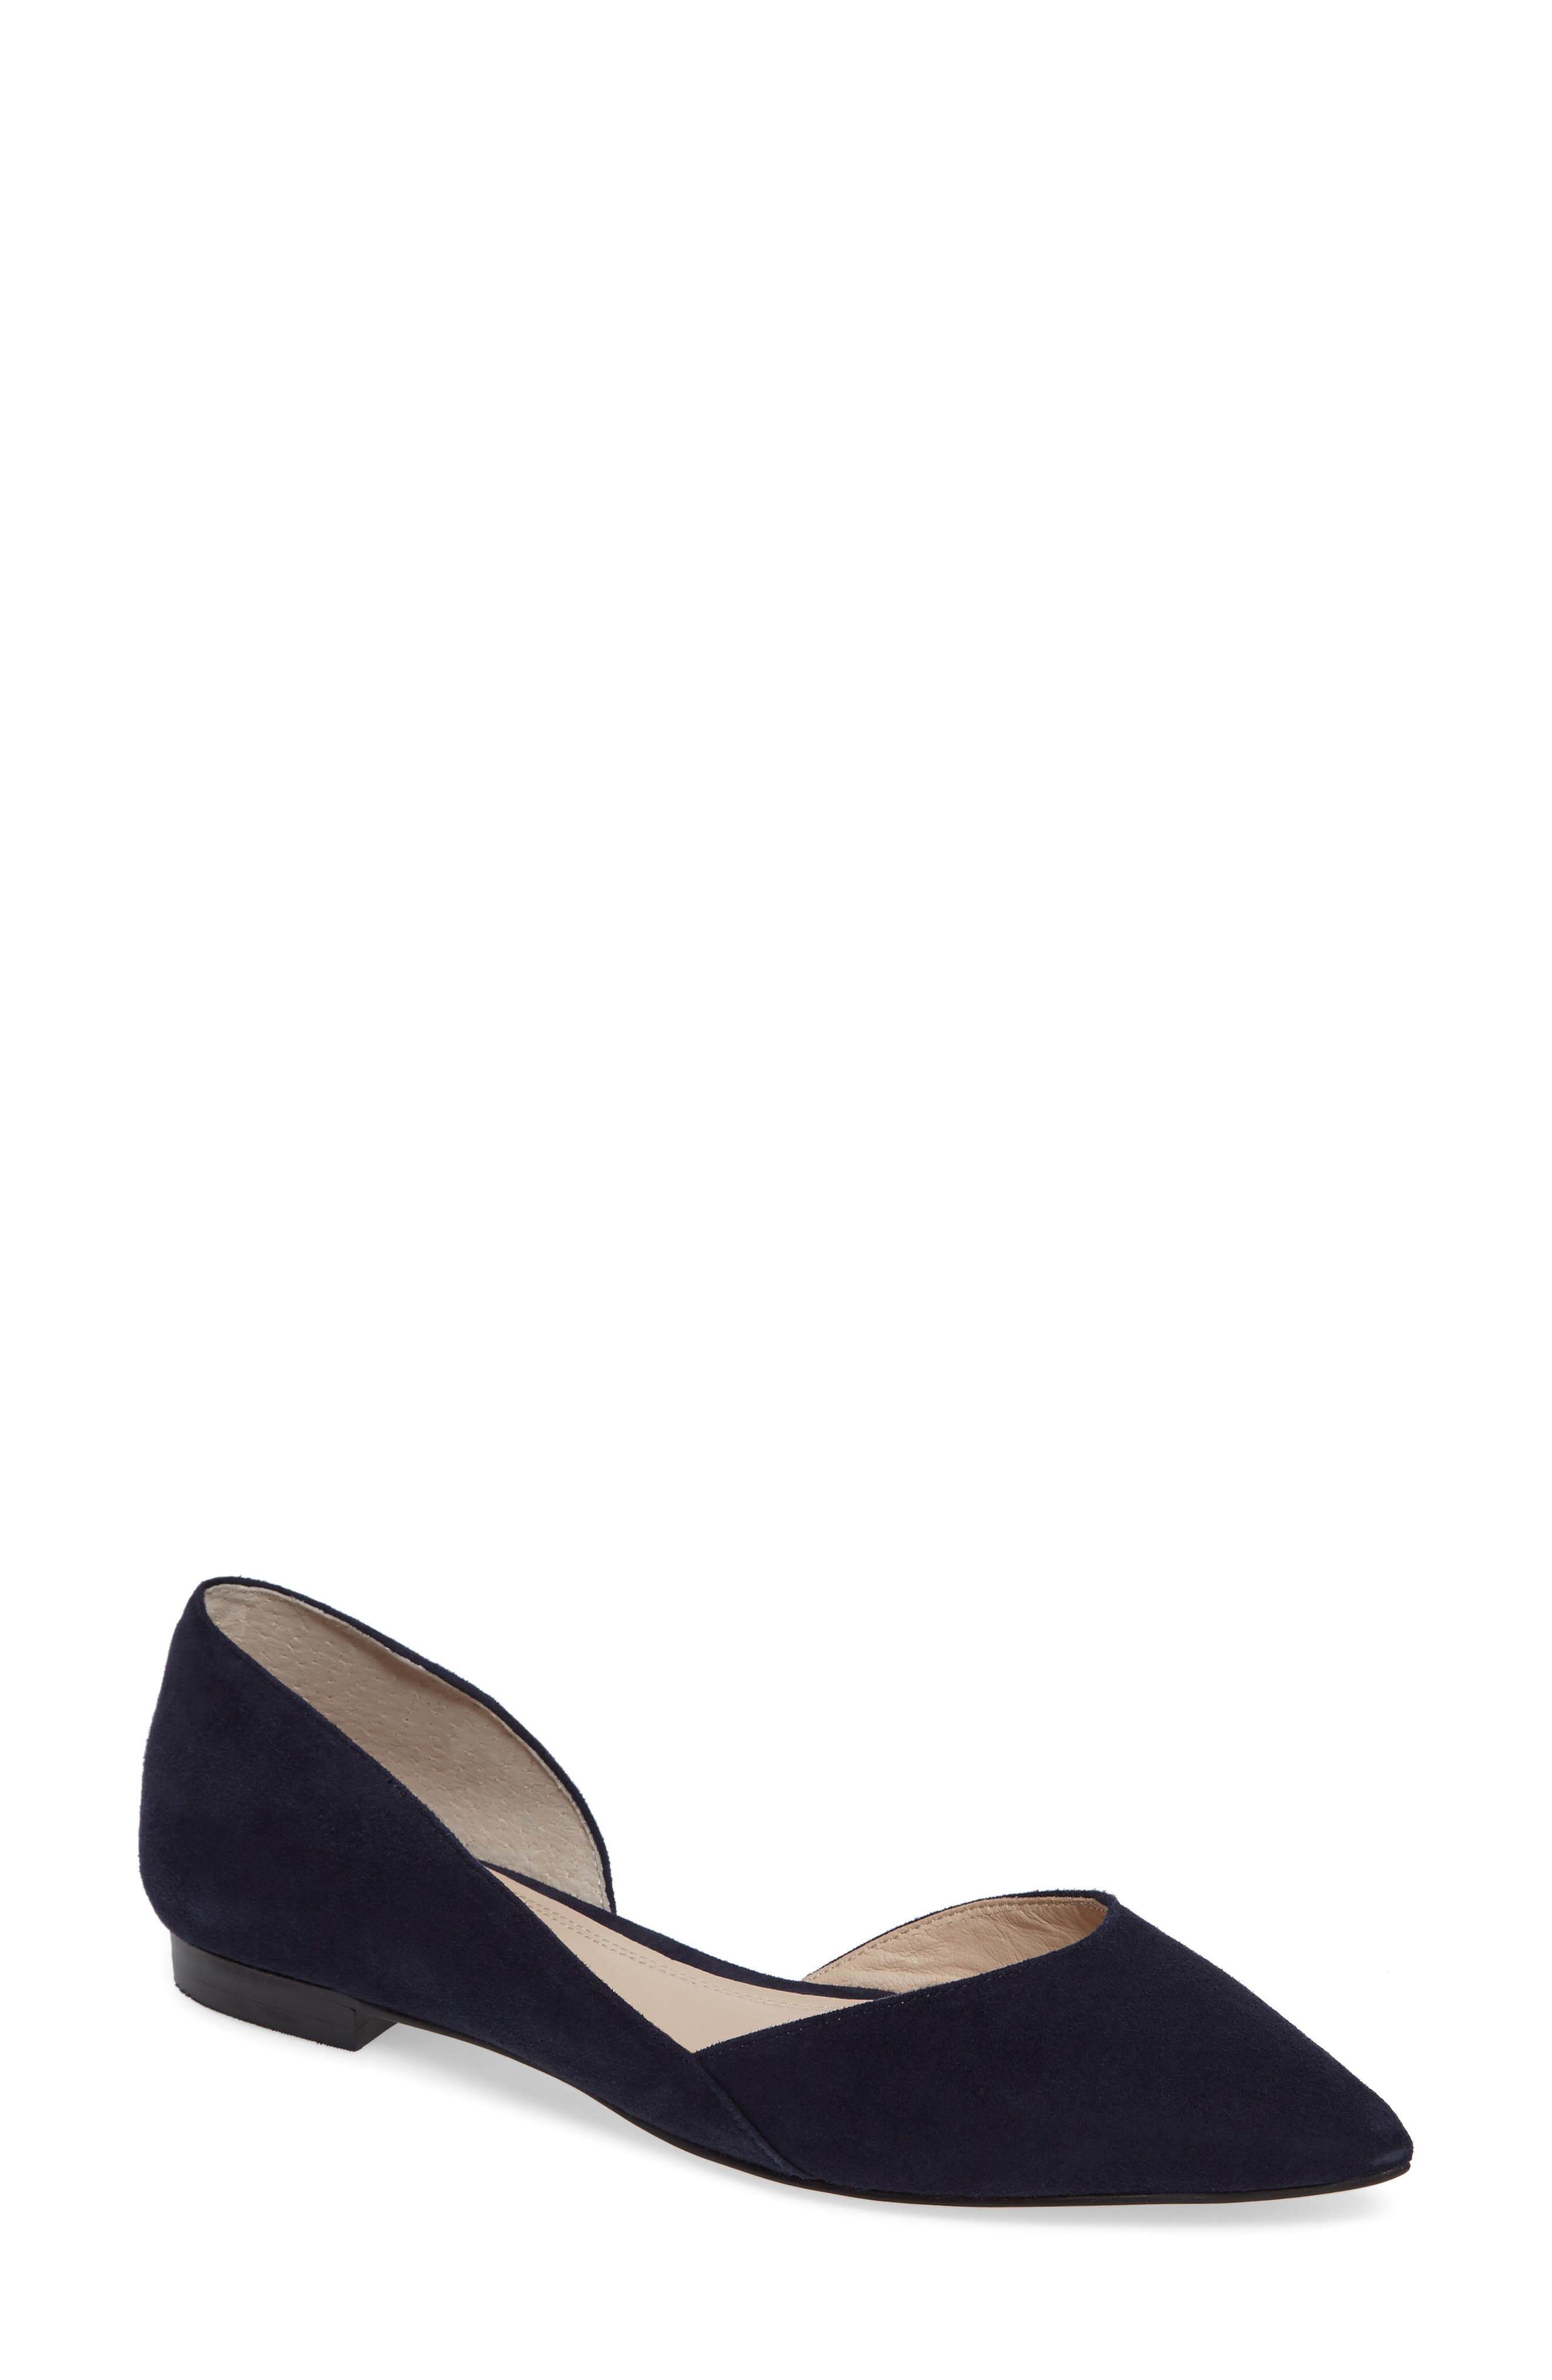 Marc Fisher LTD 'Sunny' Half d'Orsay Flat (Women)